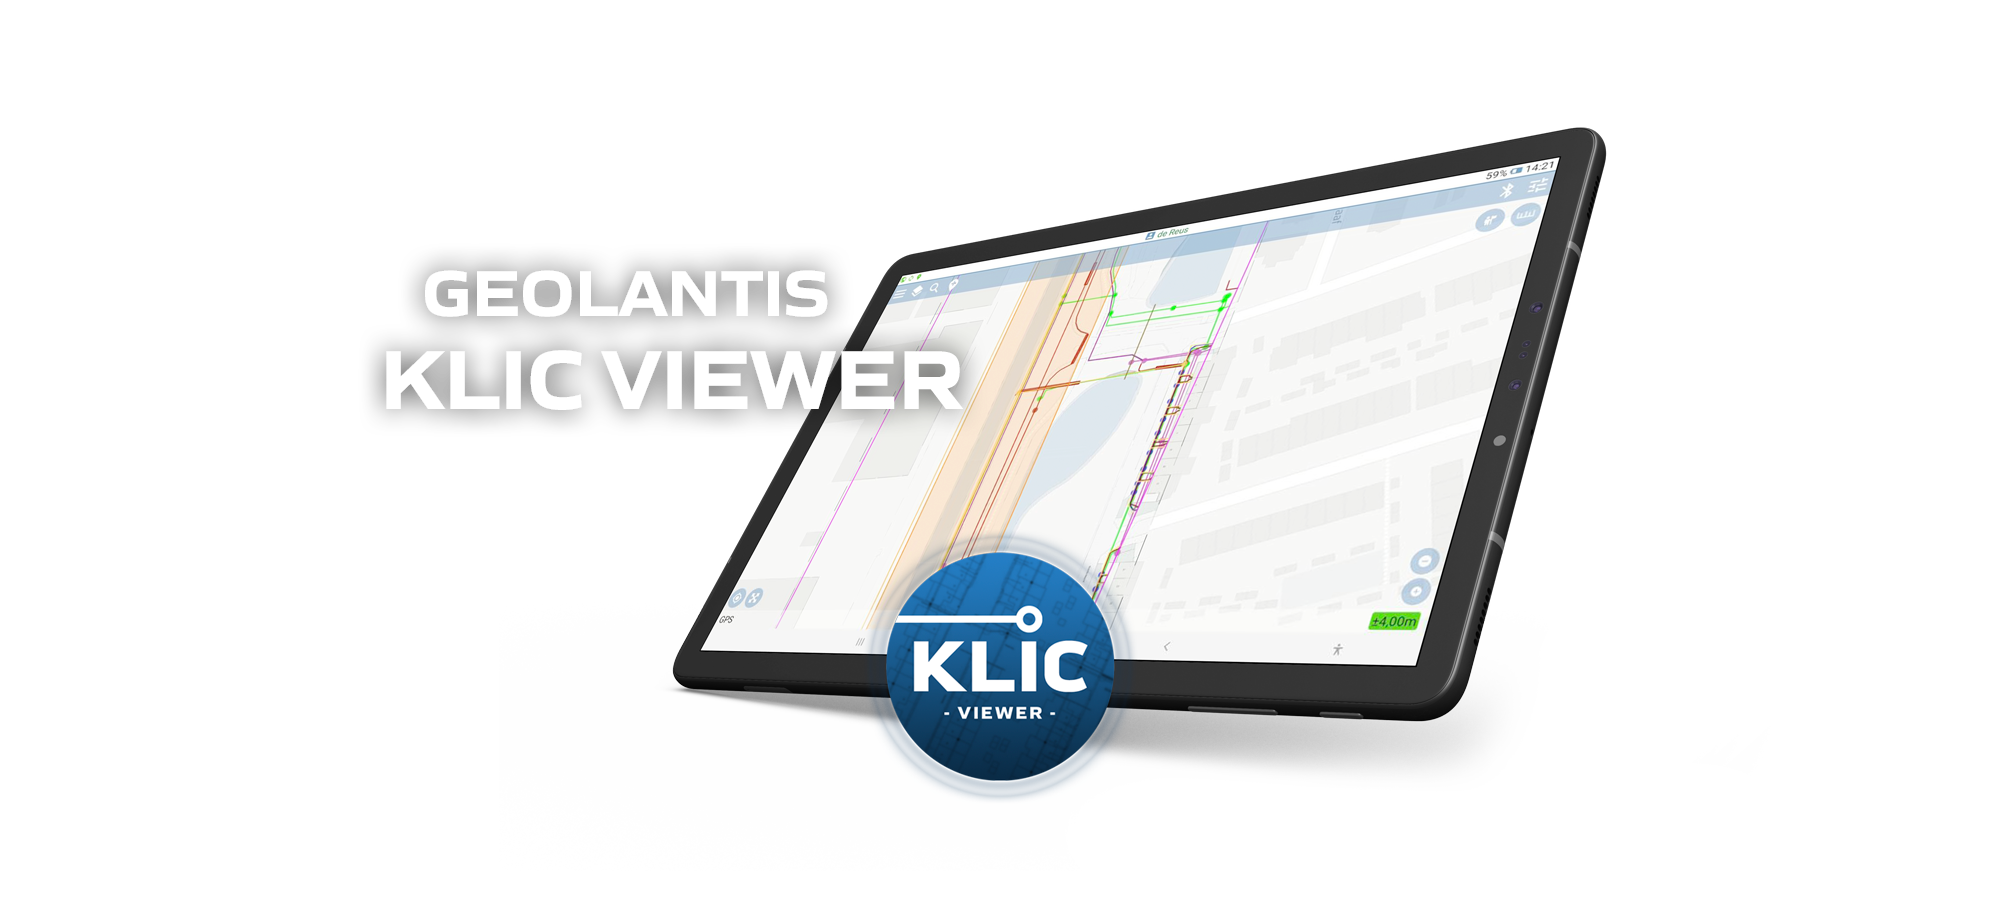 geolantis klic viewer app